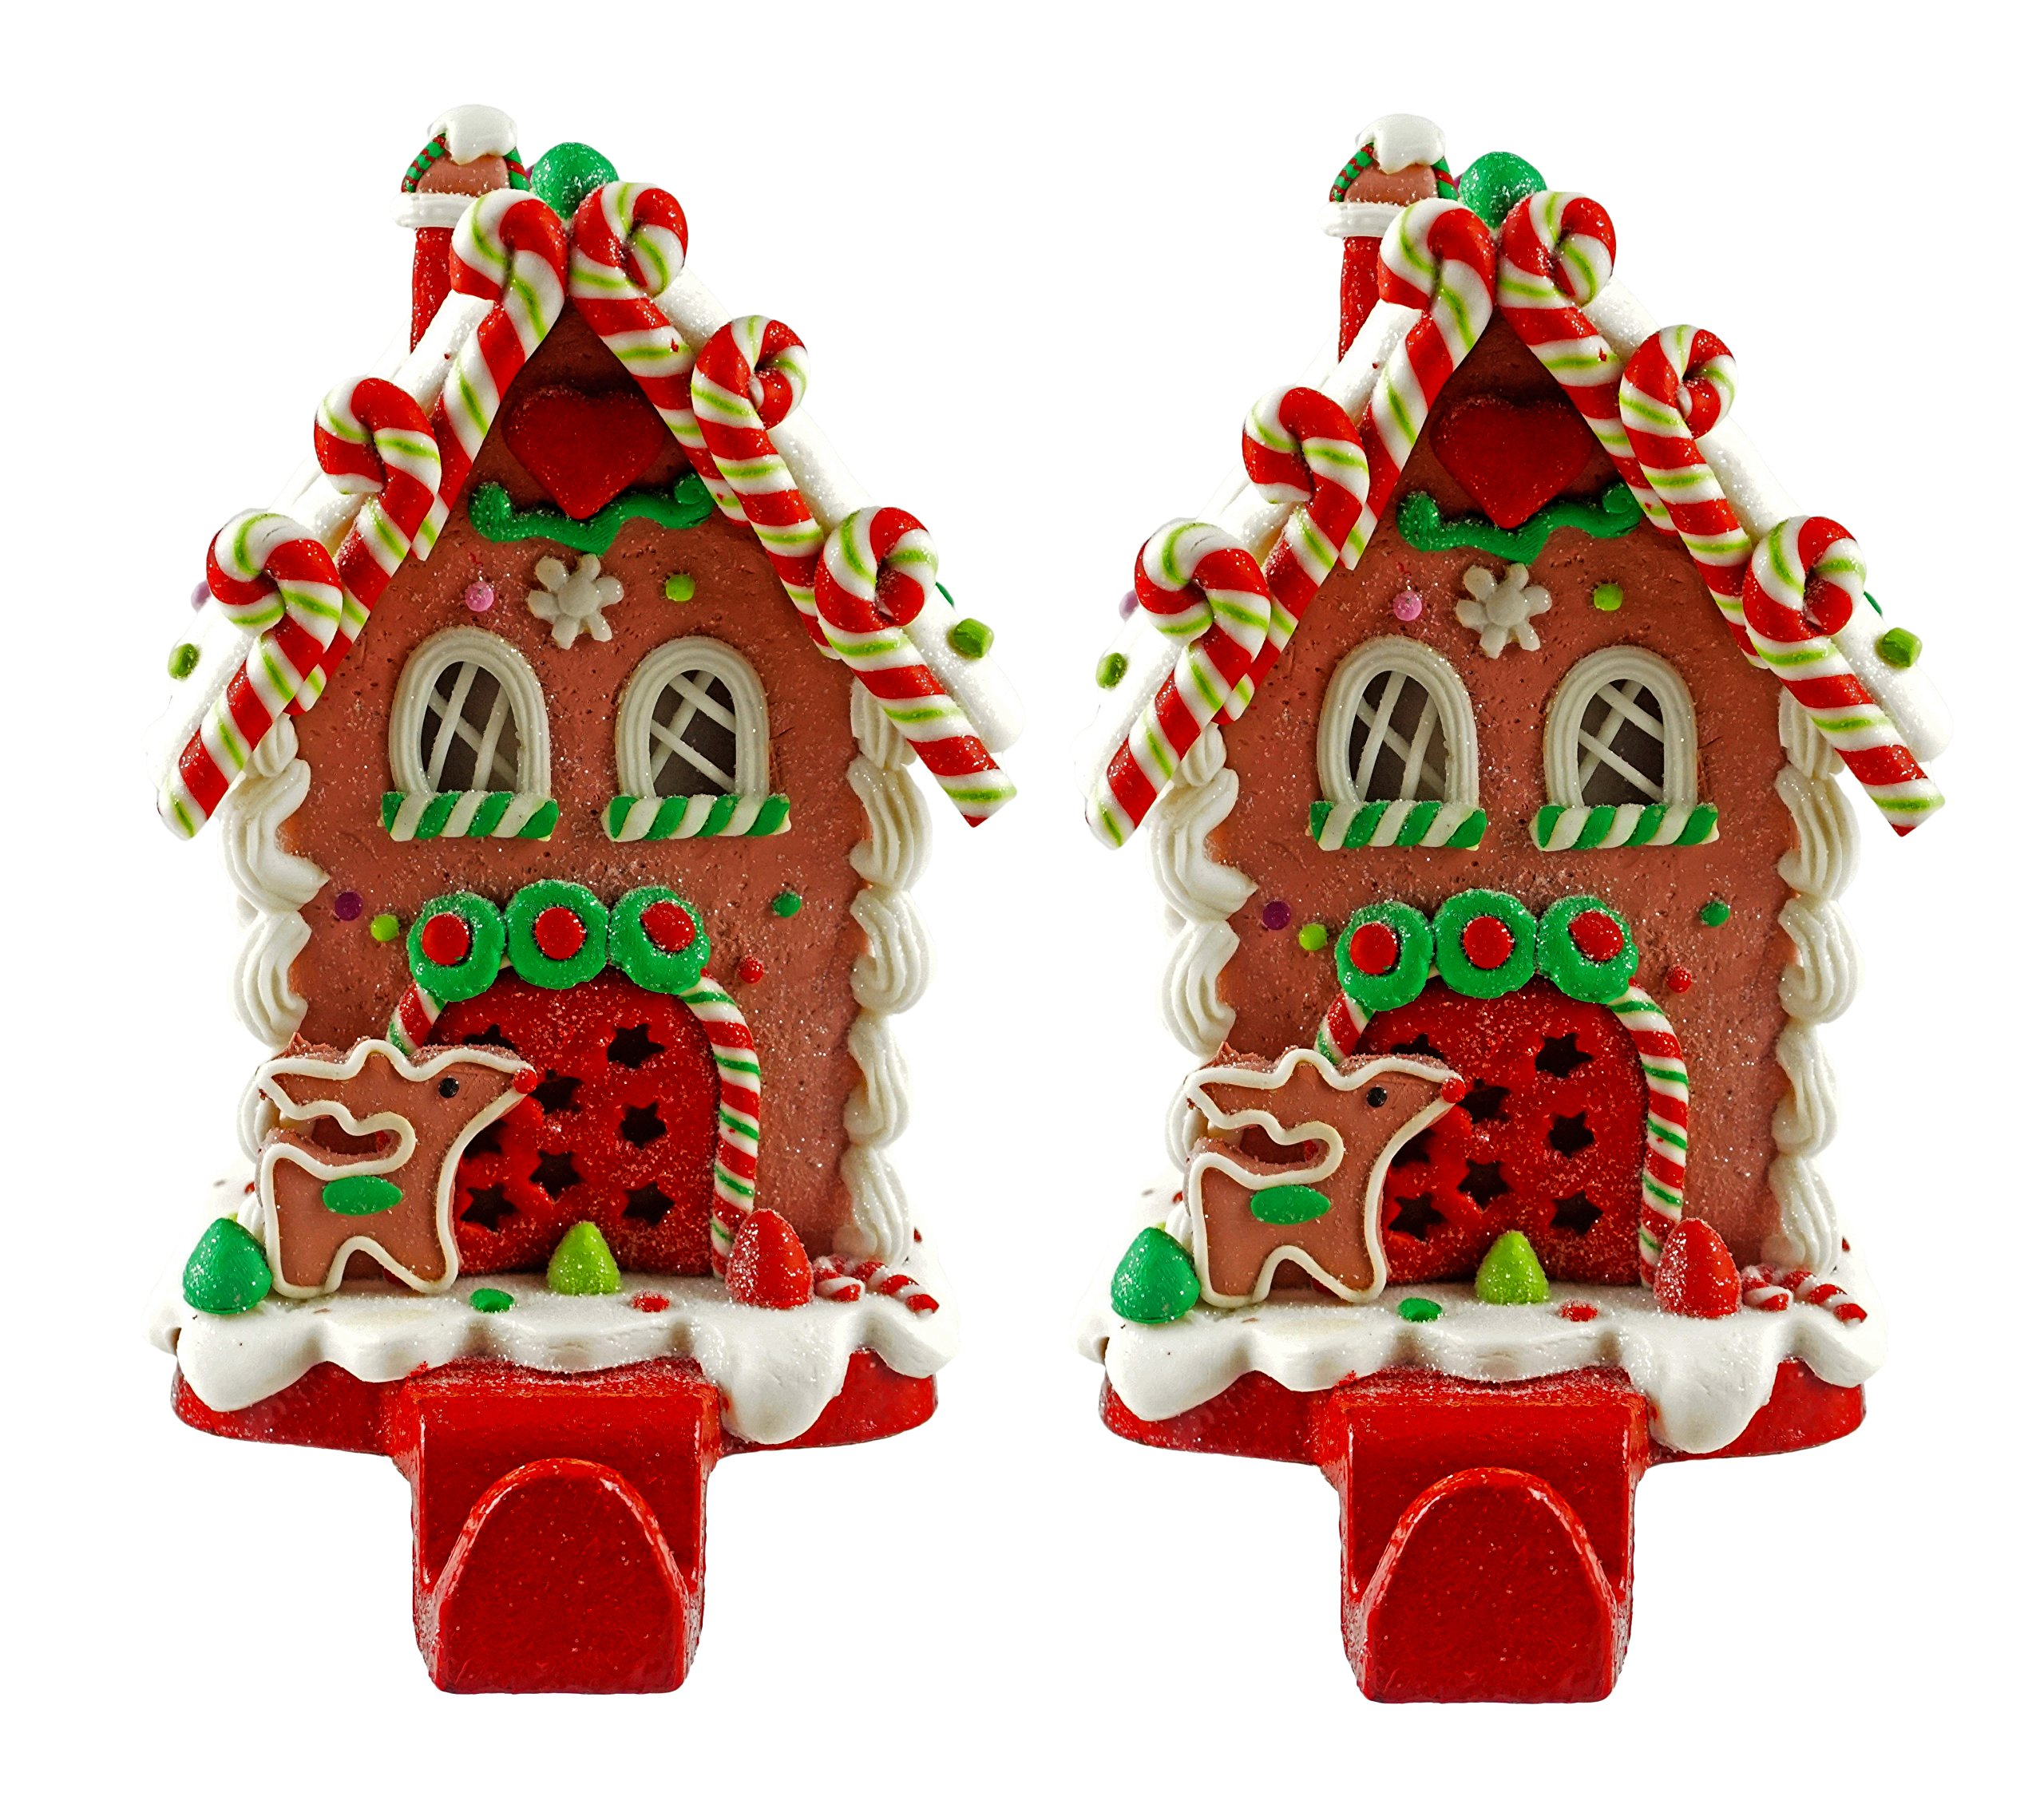 Gingerbread House Christmas Stocking Holder - Set of 2 (Candy Cane Lane) by Caffco